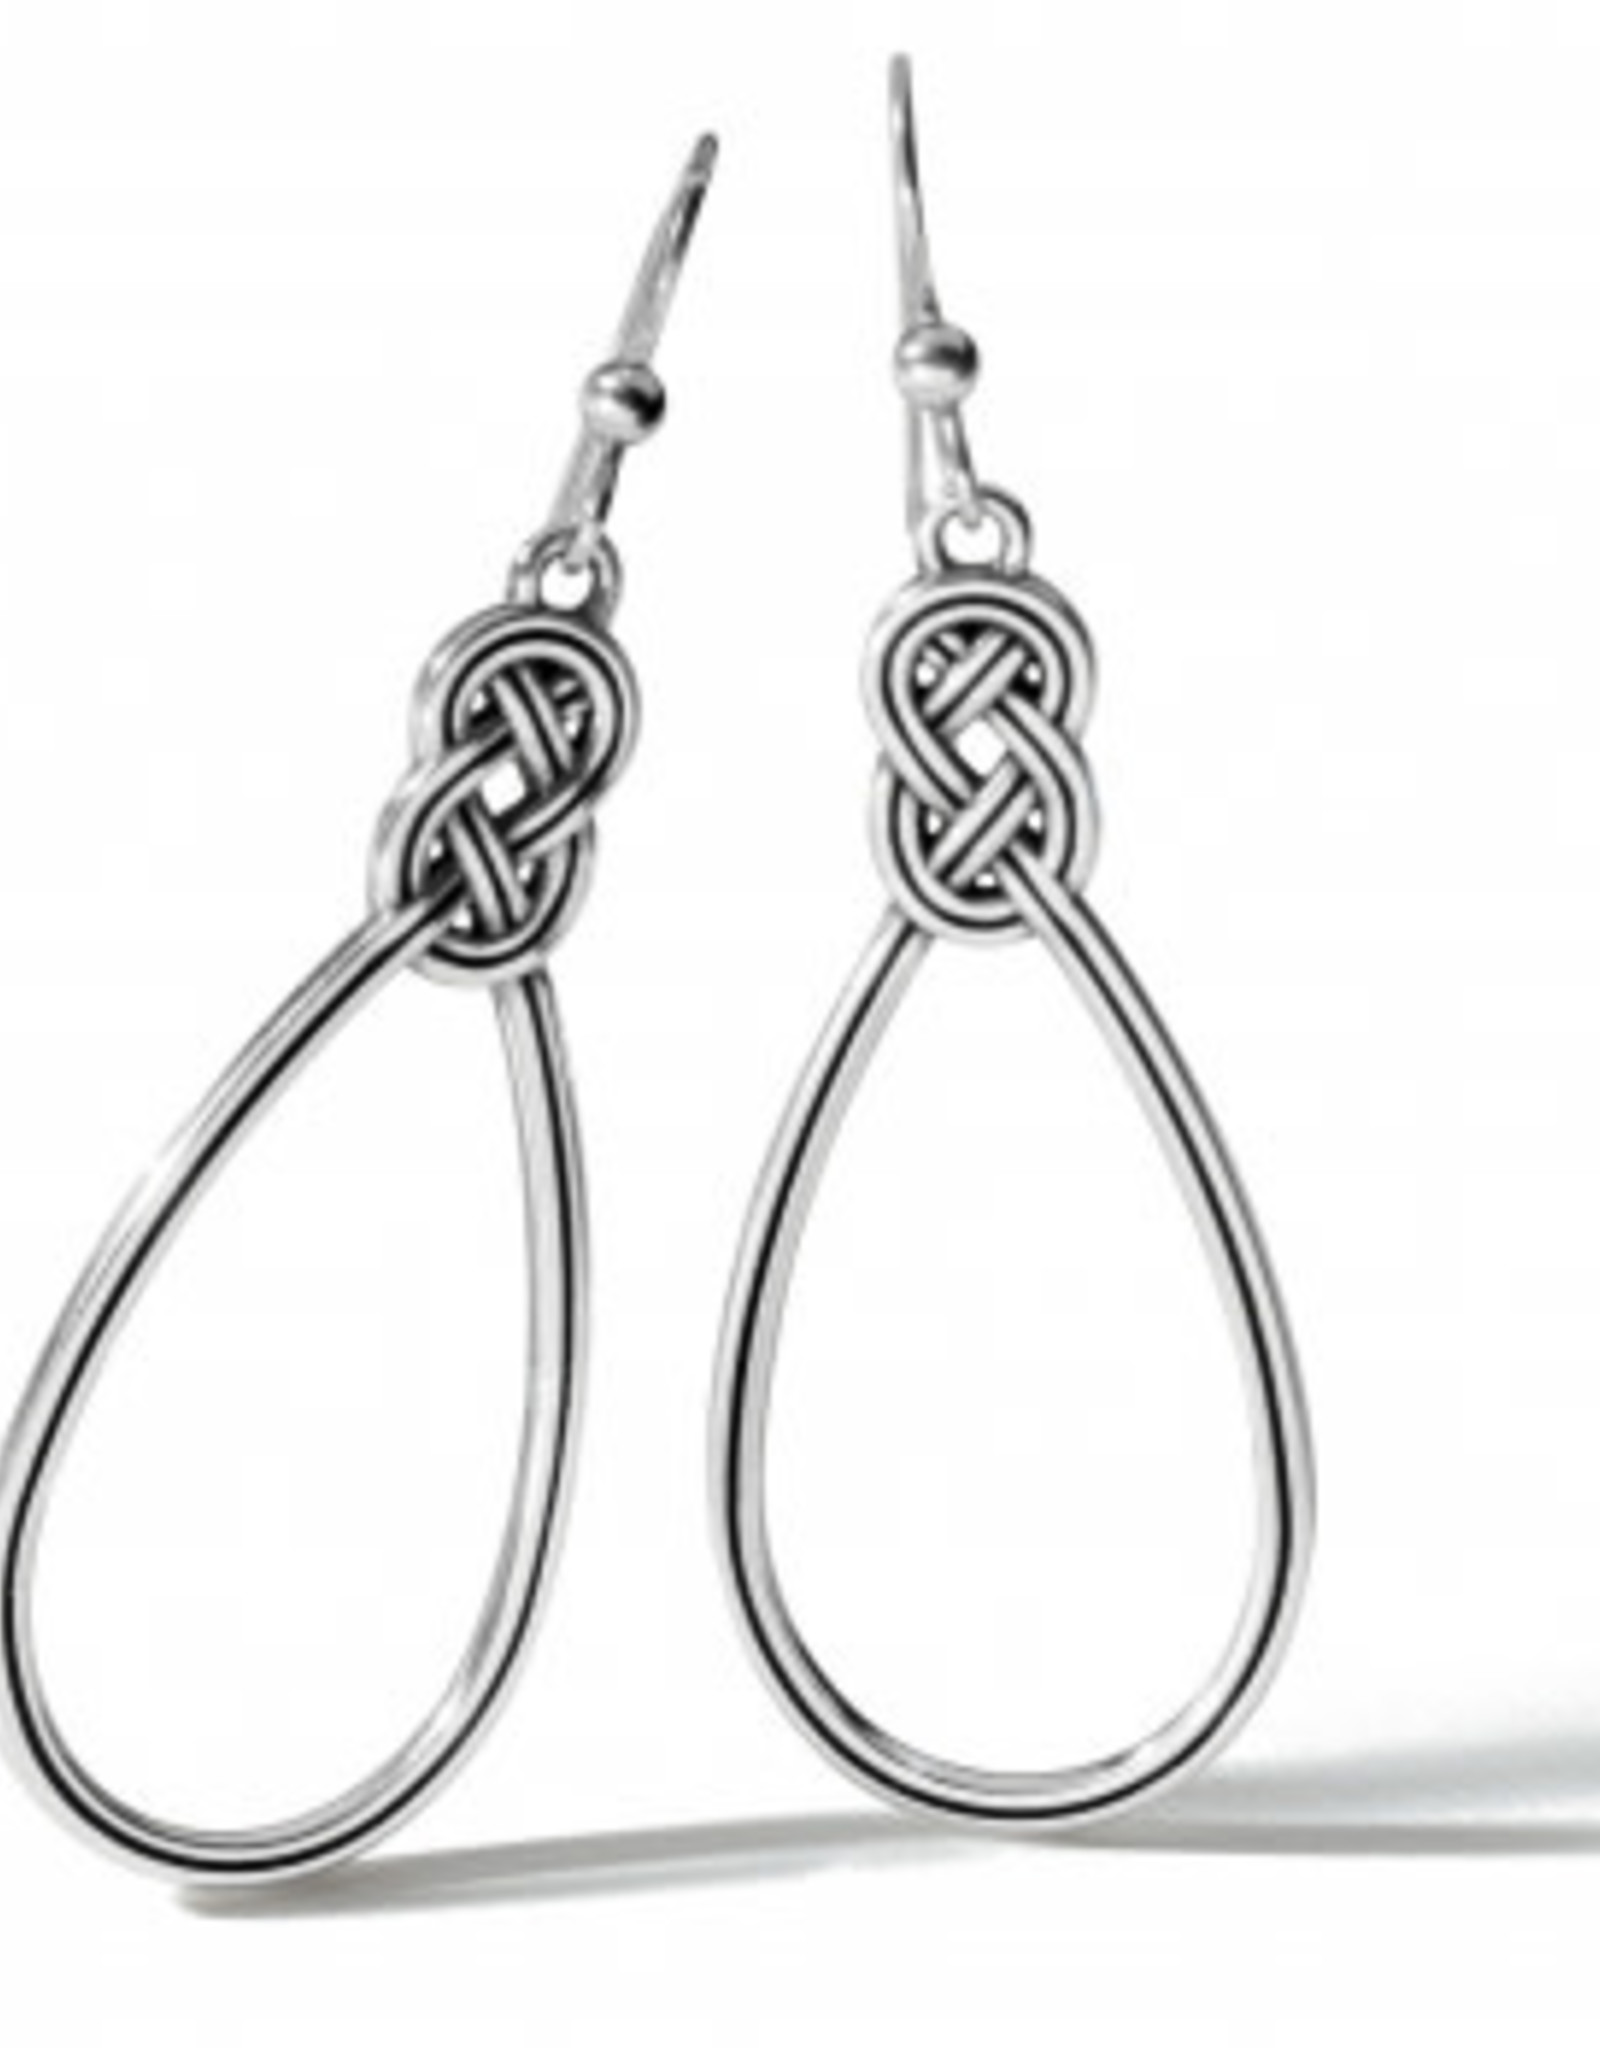 Brighton Brighton Interlock French Wire Earring